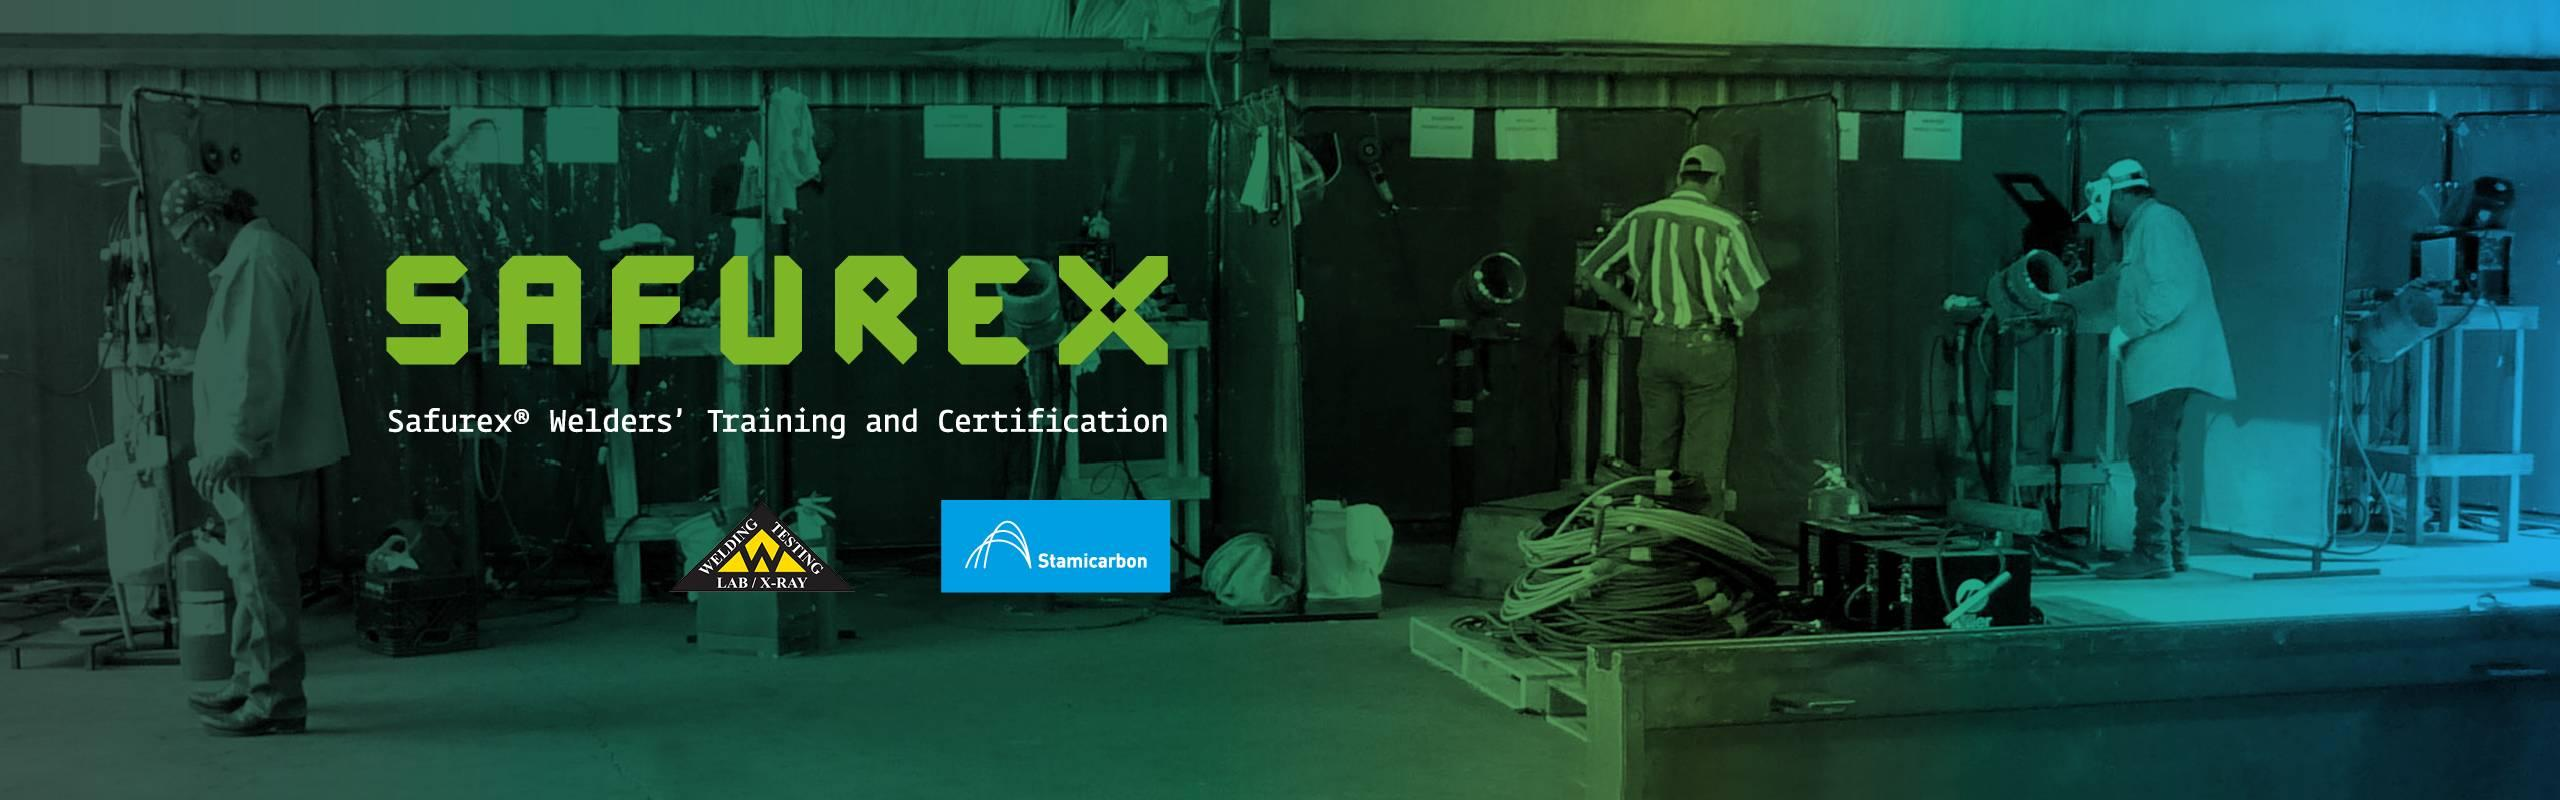 Safurex Welders Training and Certification Stamicarbon